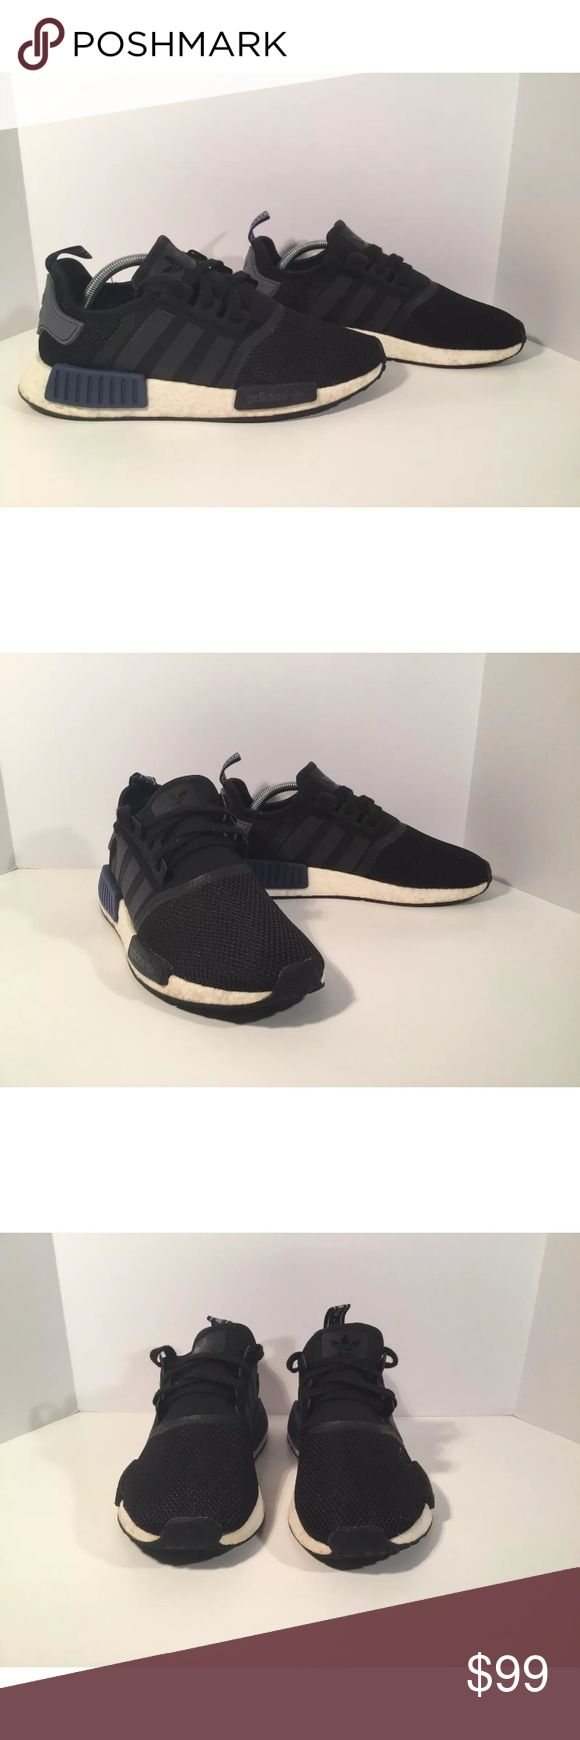 Adidas NMD R1 Item details:   -adidas brand  -in good condition  -boost technology  -Men's Size 9.5  -Nmd R1   All my shoes are 100% authentic. Buyer satisfaction is very important to me and I will always do my best to make sure you have a good experience when purchasing my items. I sell many hard to find, past season, and popular shoes at discount prices. If I have the box for the shoes, I always include it in the pictures. adidas Shoes Athletic Shoes